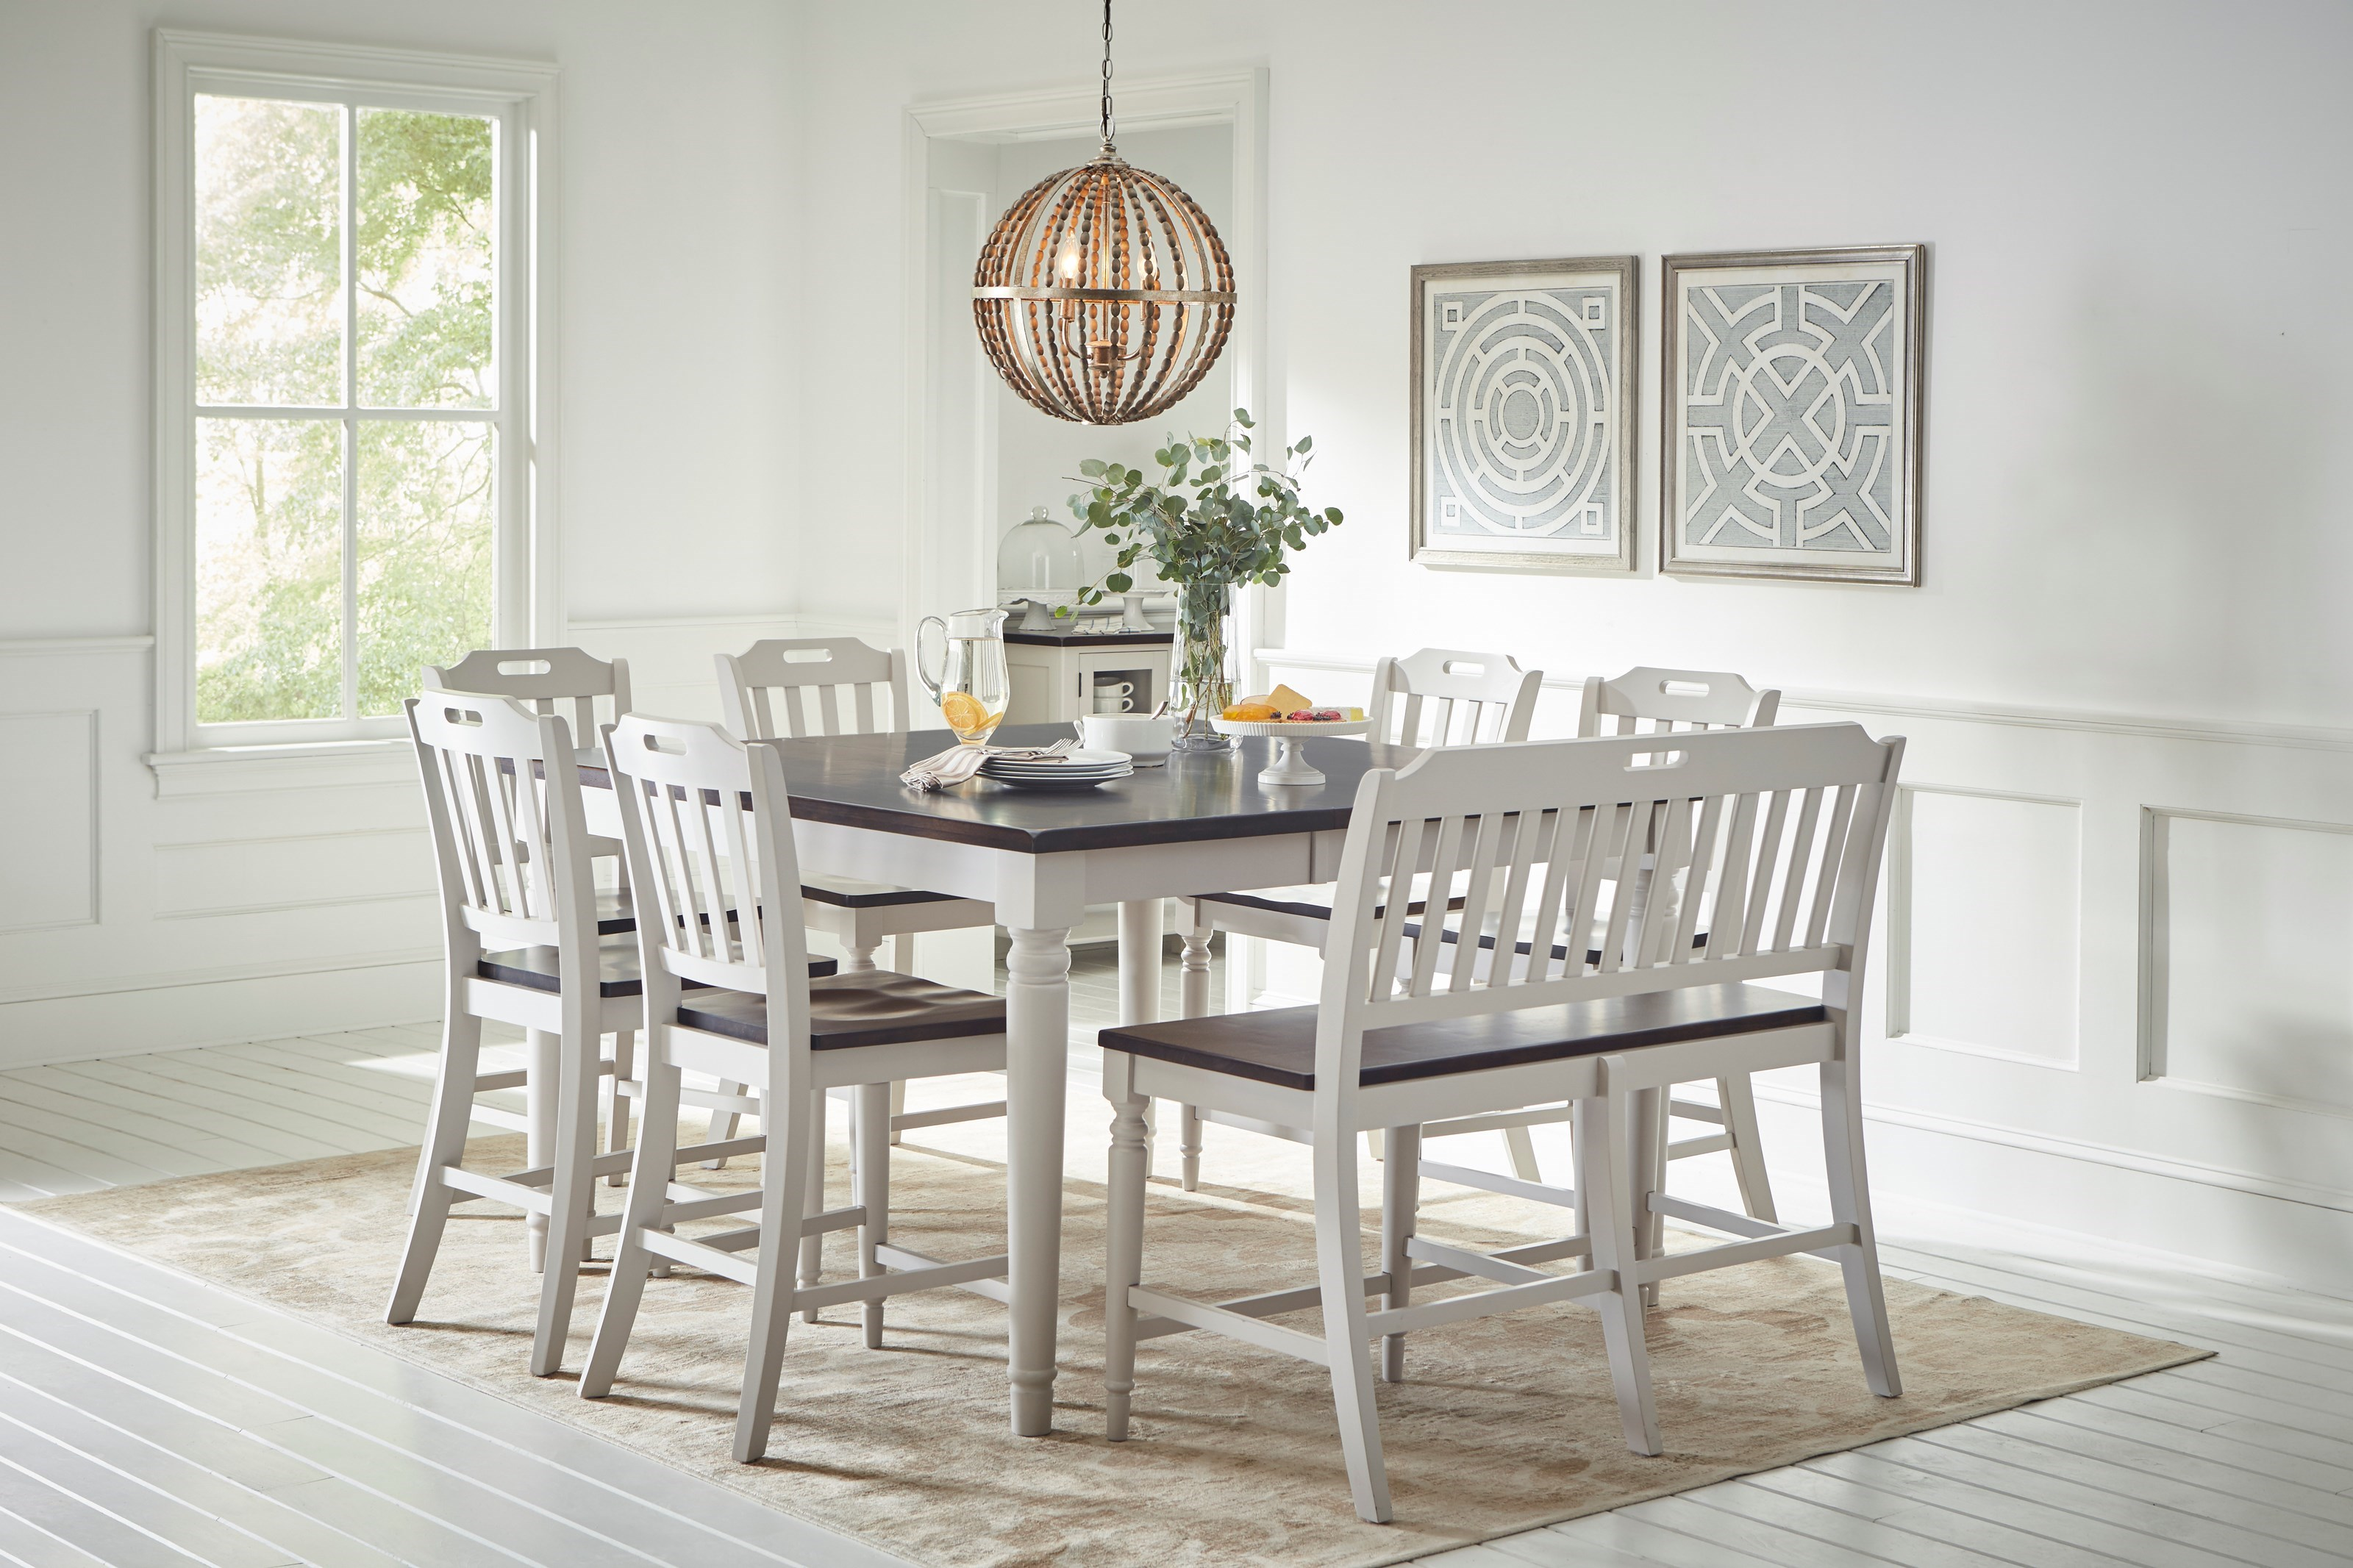 Bon Jofran Orchard Park Counter Height Dining Table With 6 Chairs And Bench